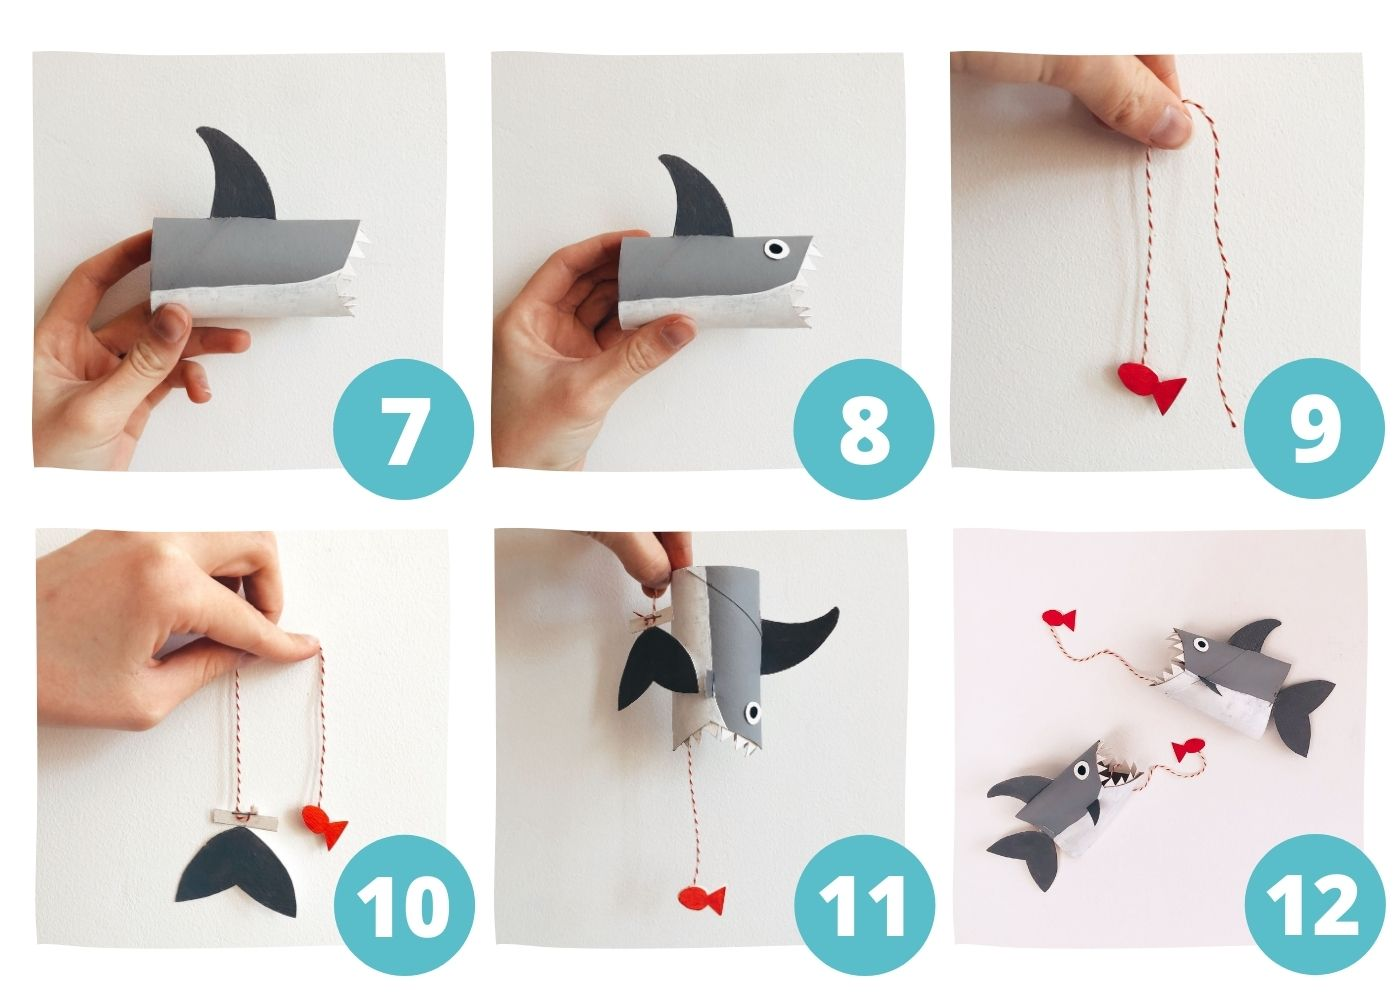 Shark DIY Toilet Paper Roll Crafts Steps7-12